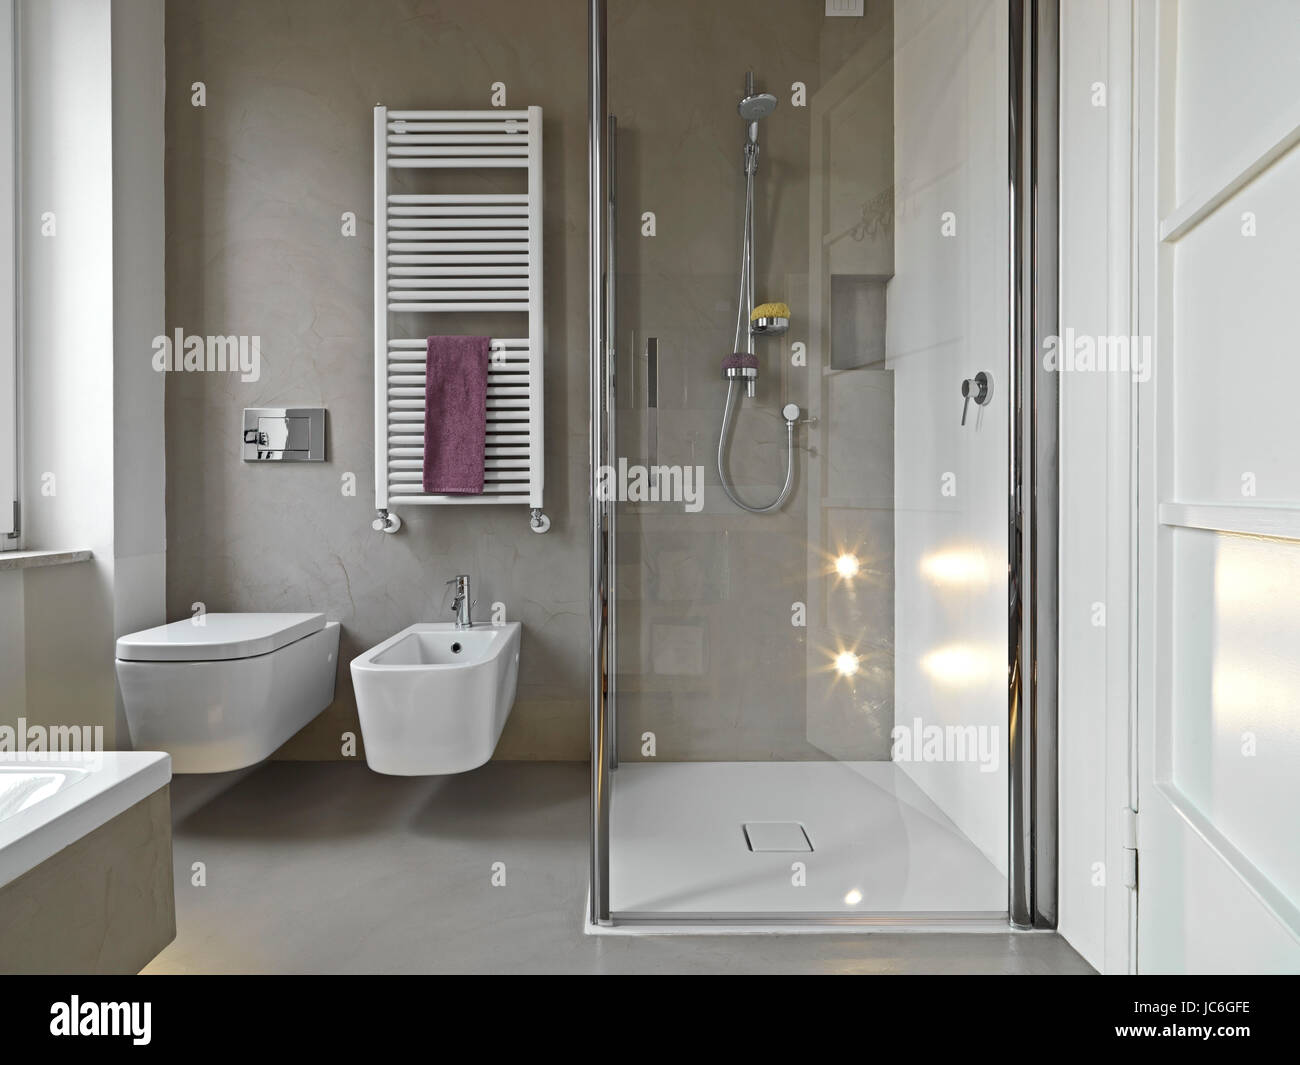 View Of Sanitary Ware And Shower Cubicle In A Modern Bathroom